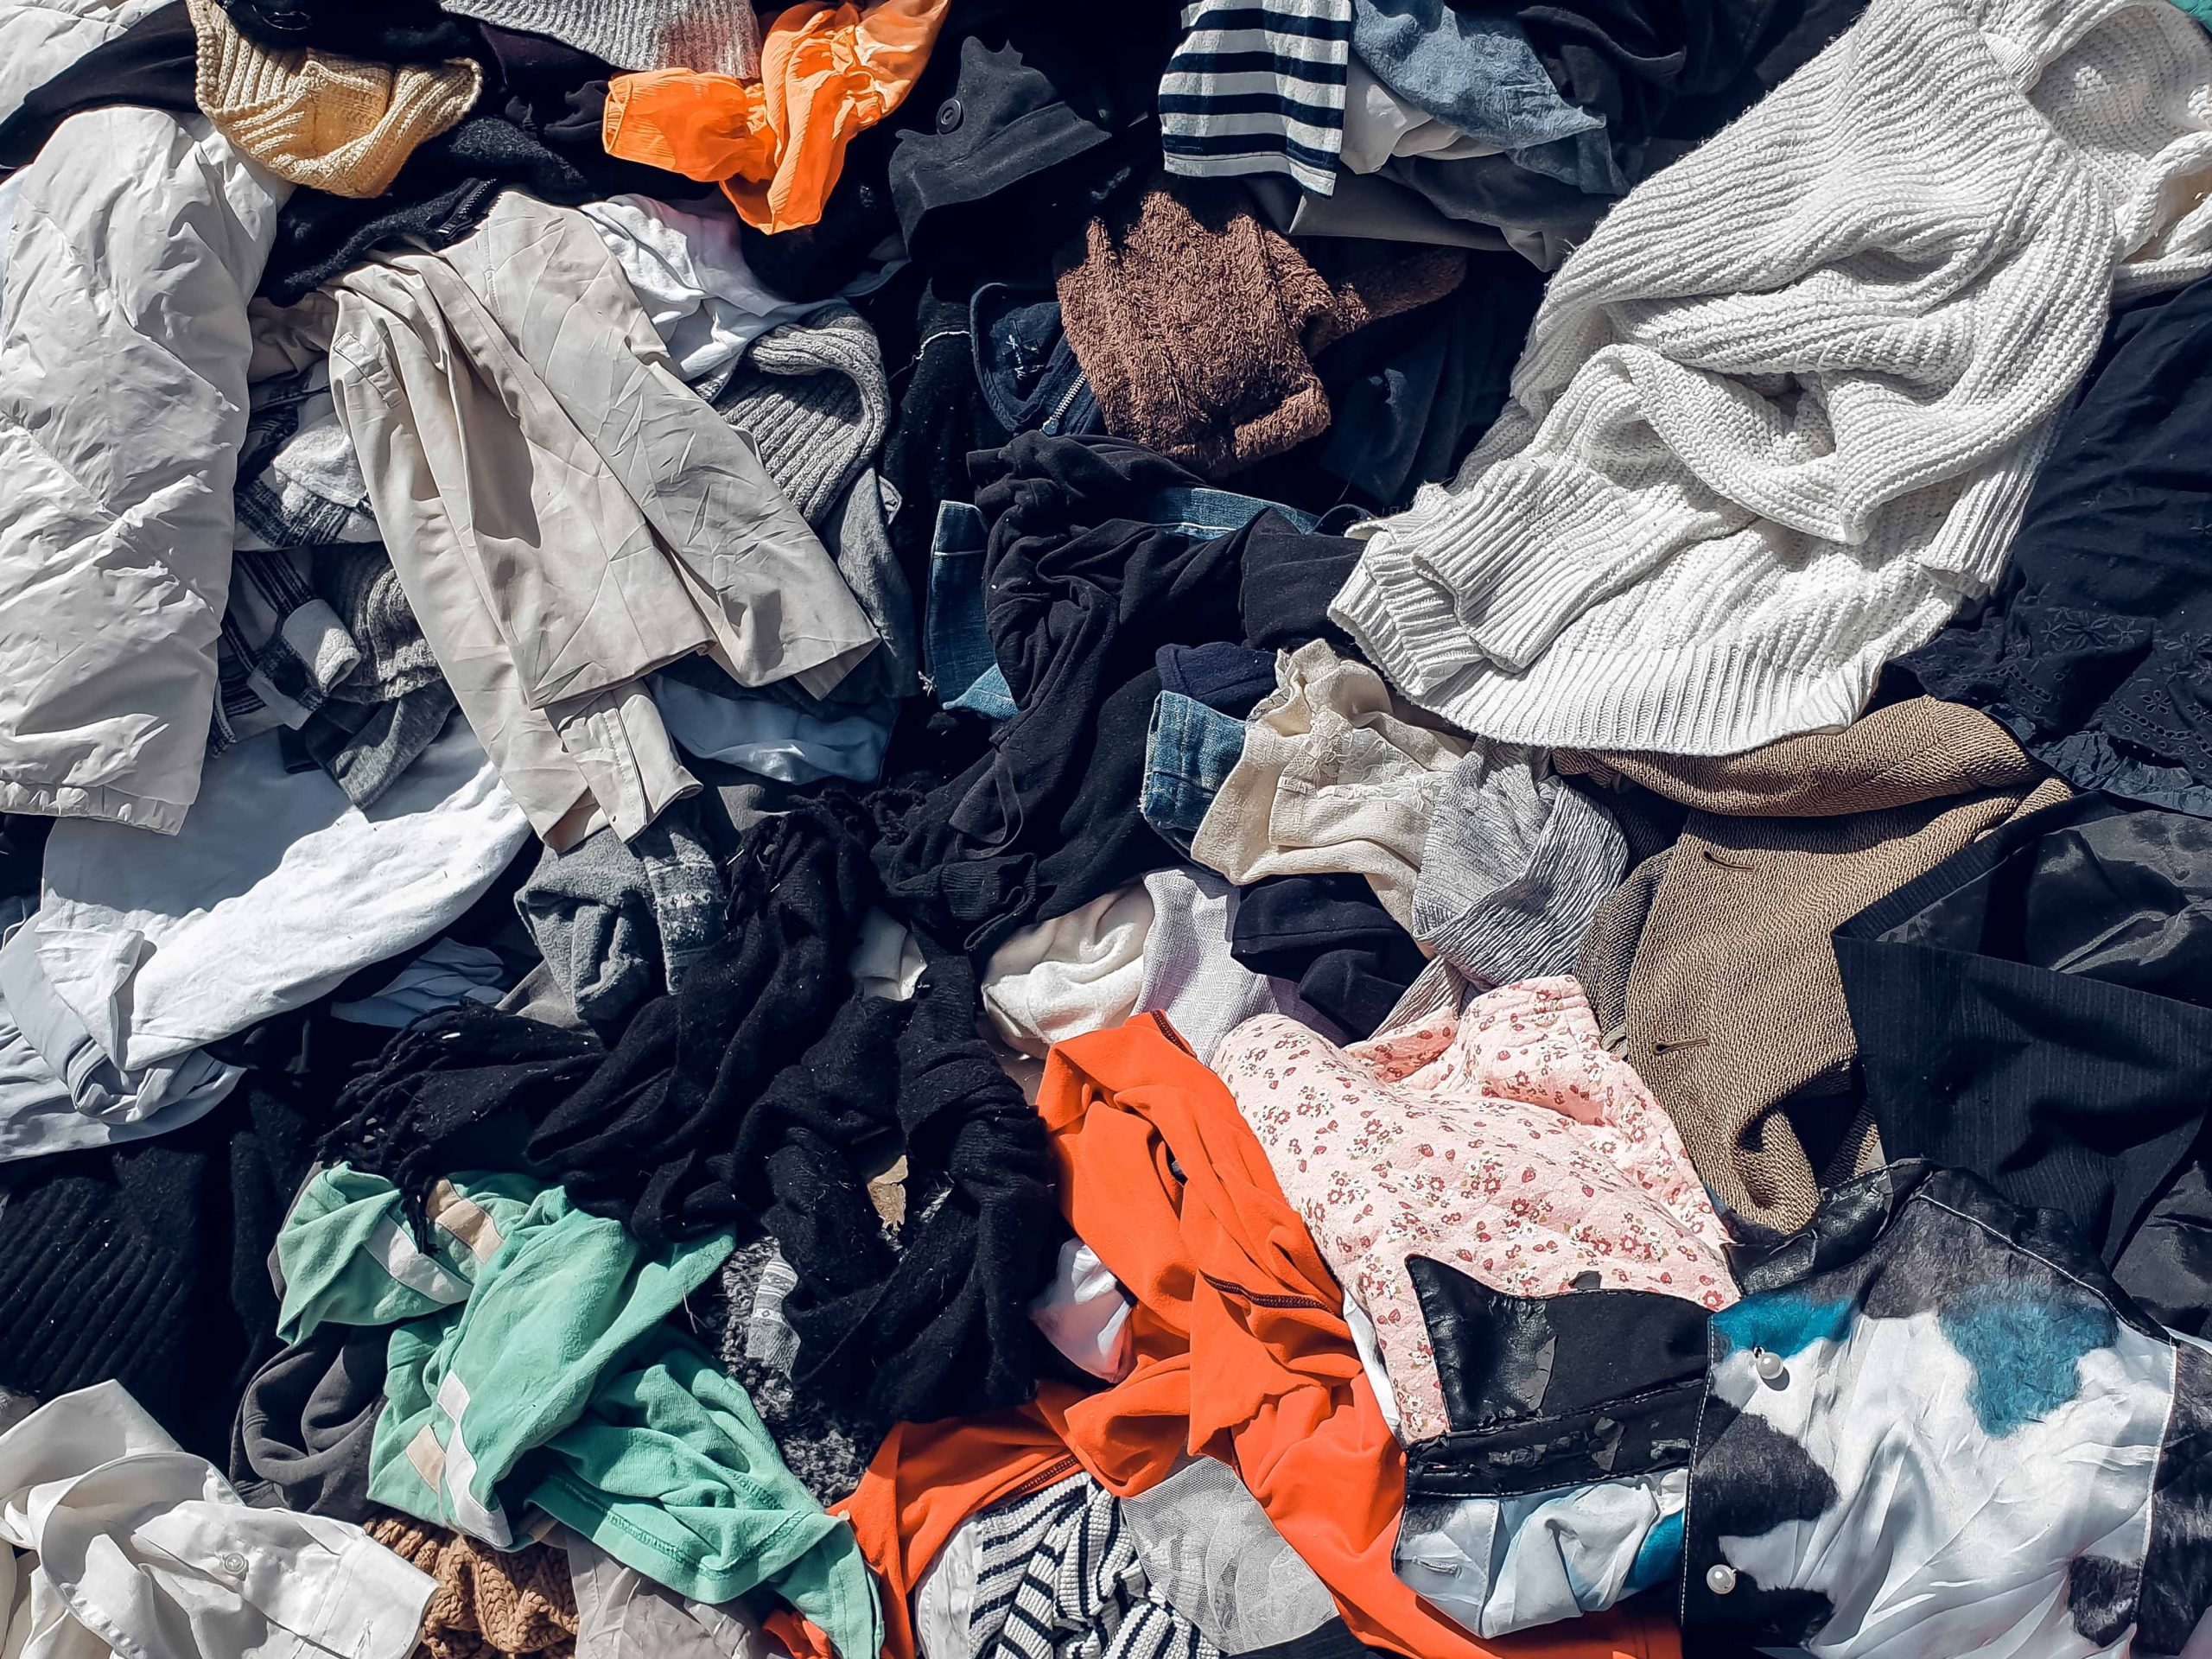 Pile of Clothes in Trash